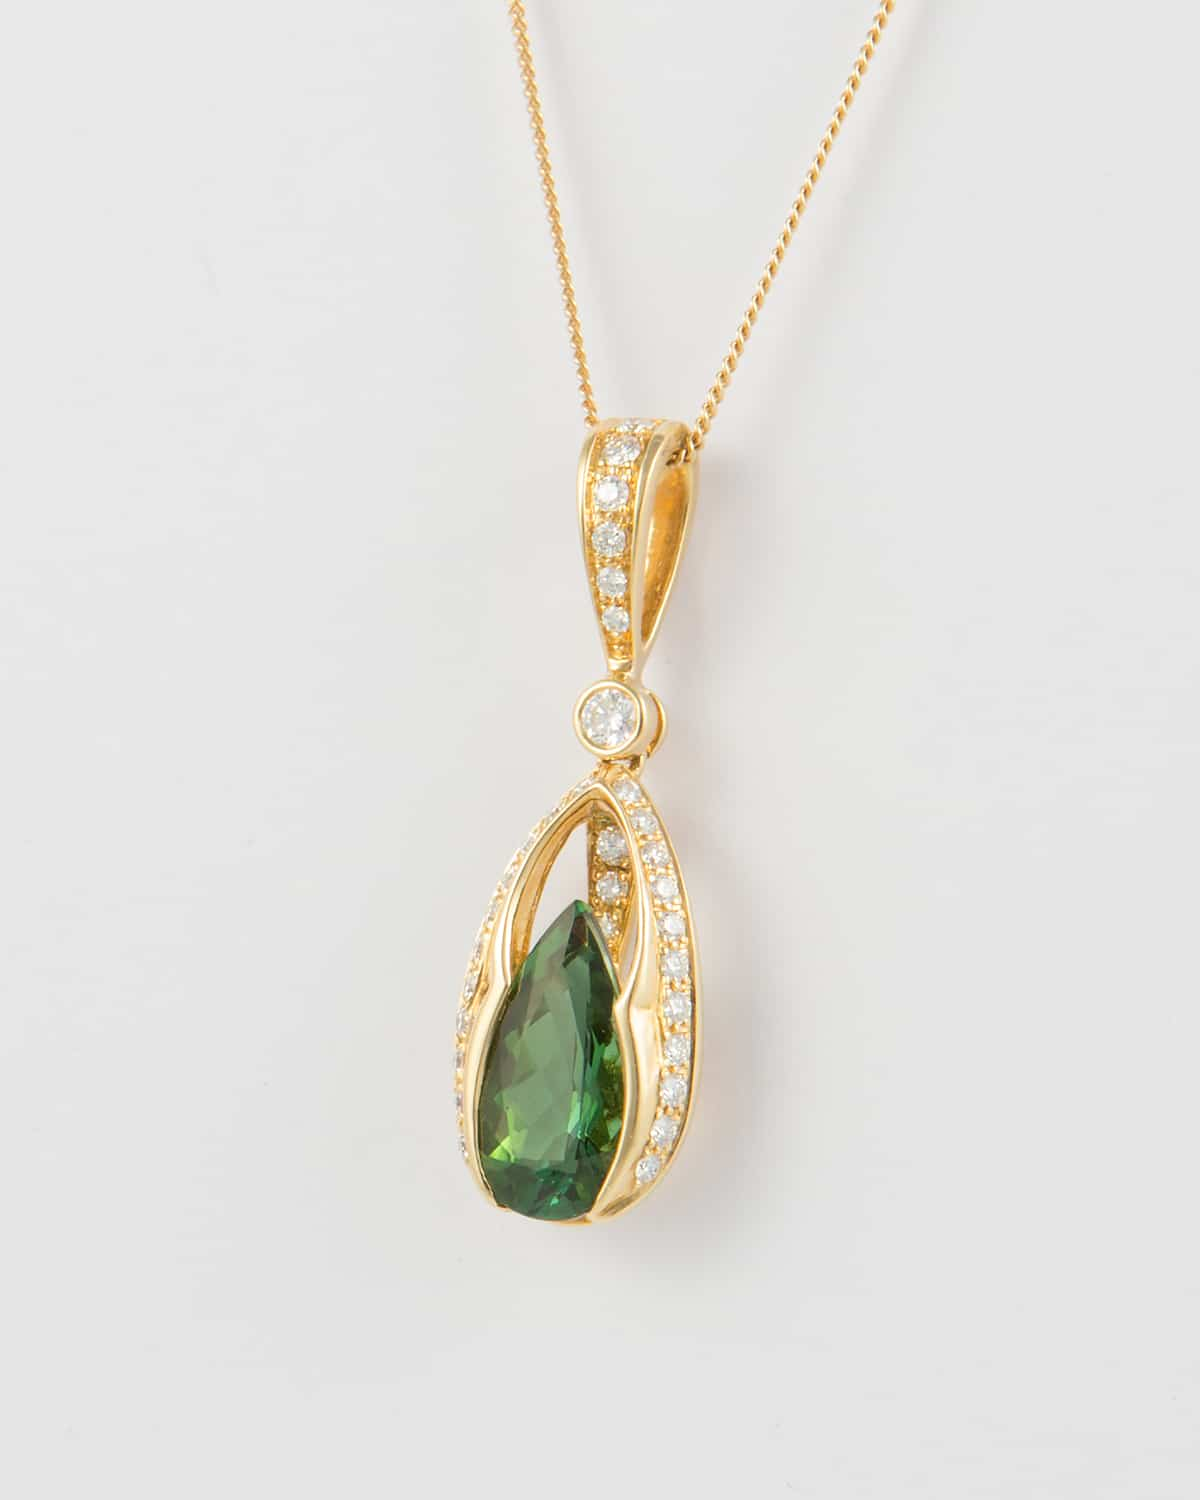 The October birthstone, tourmaline